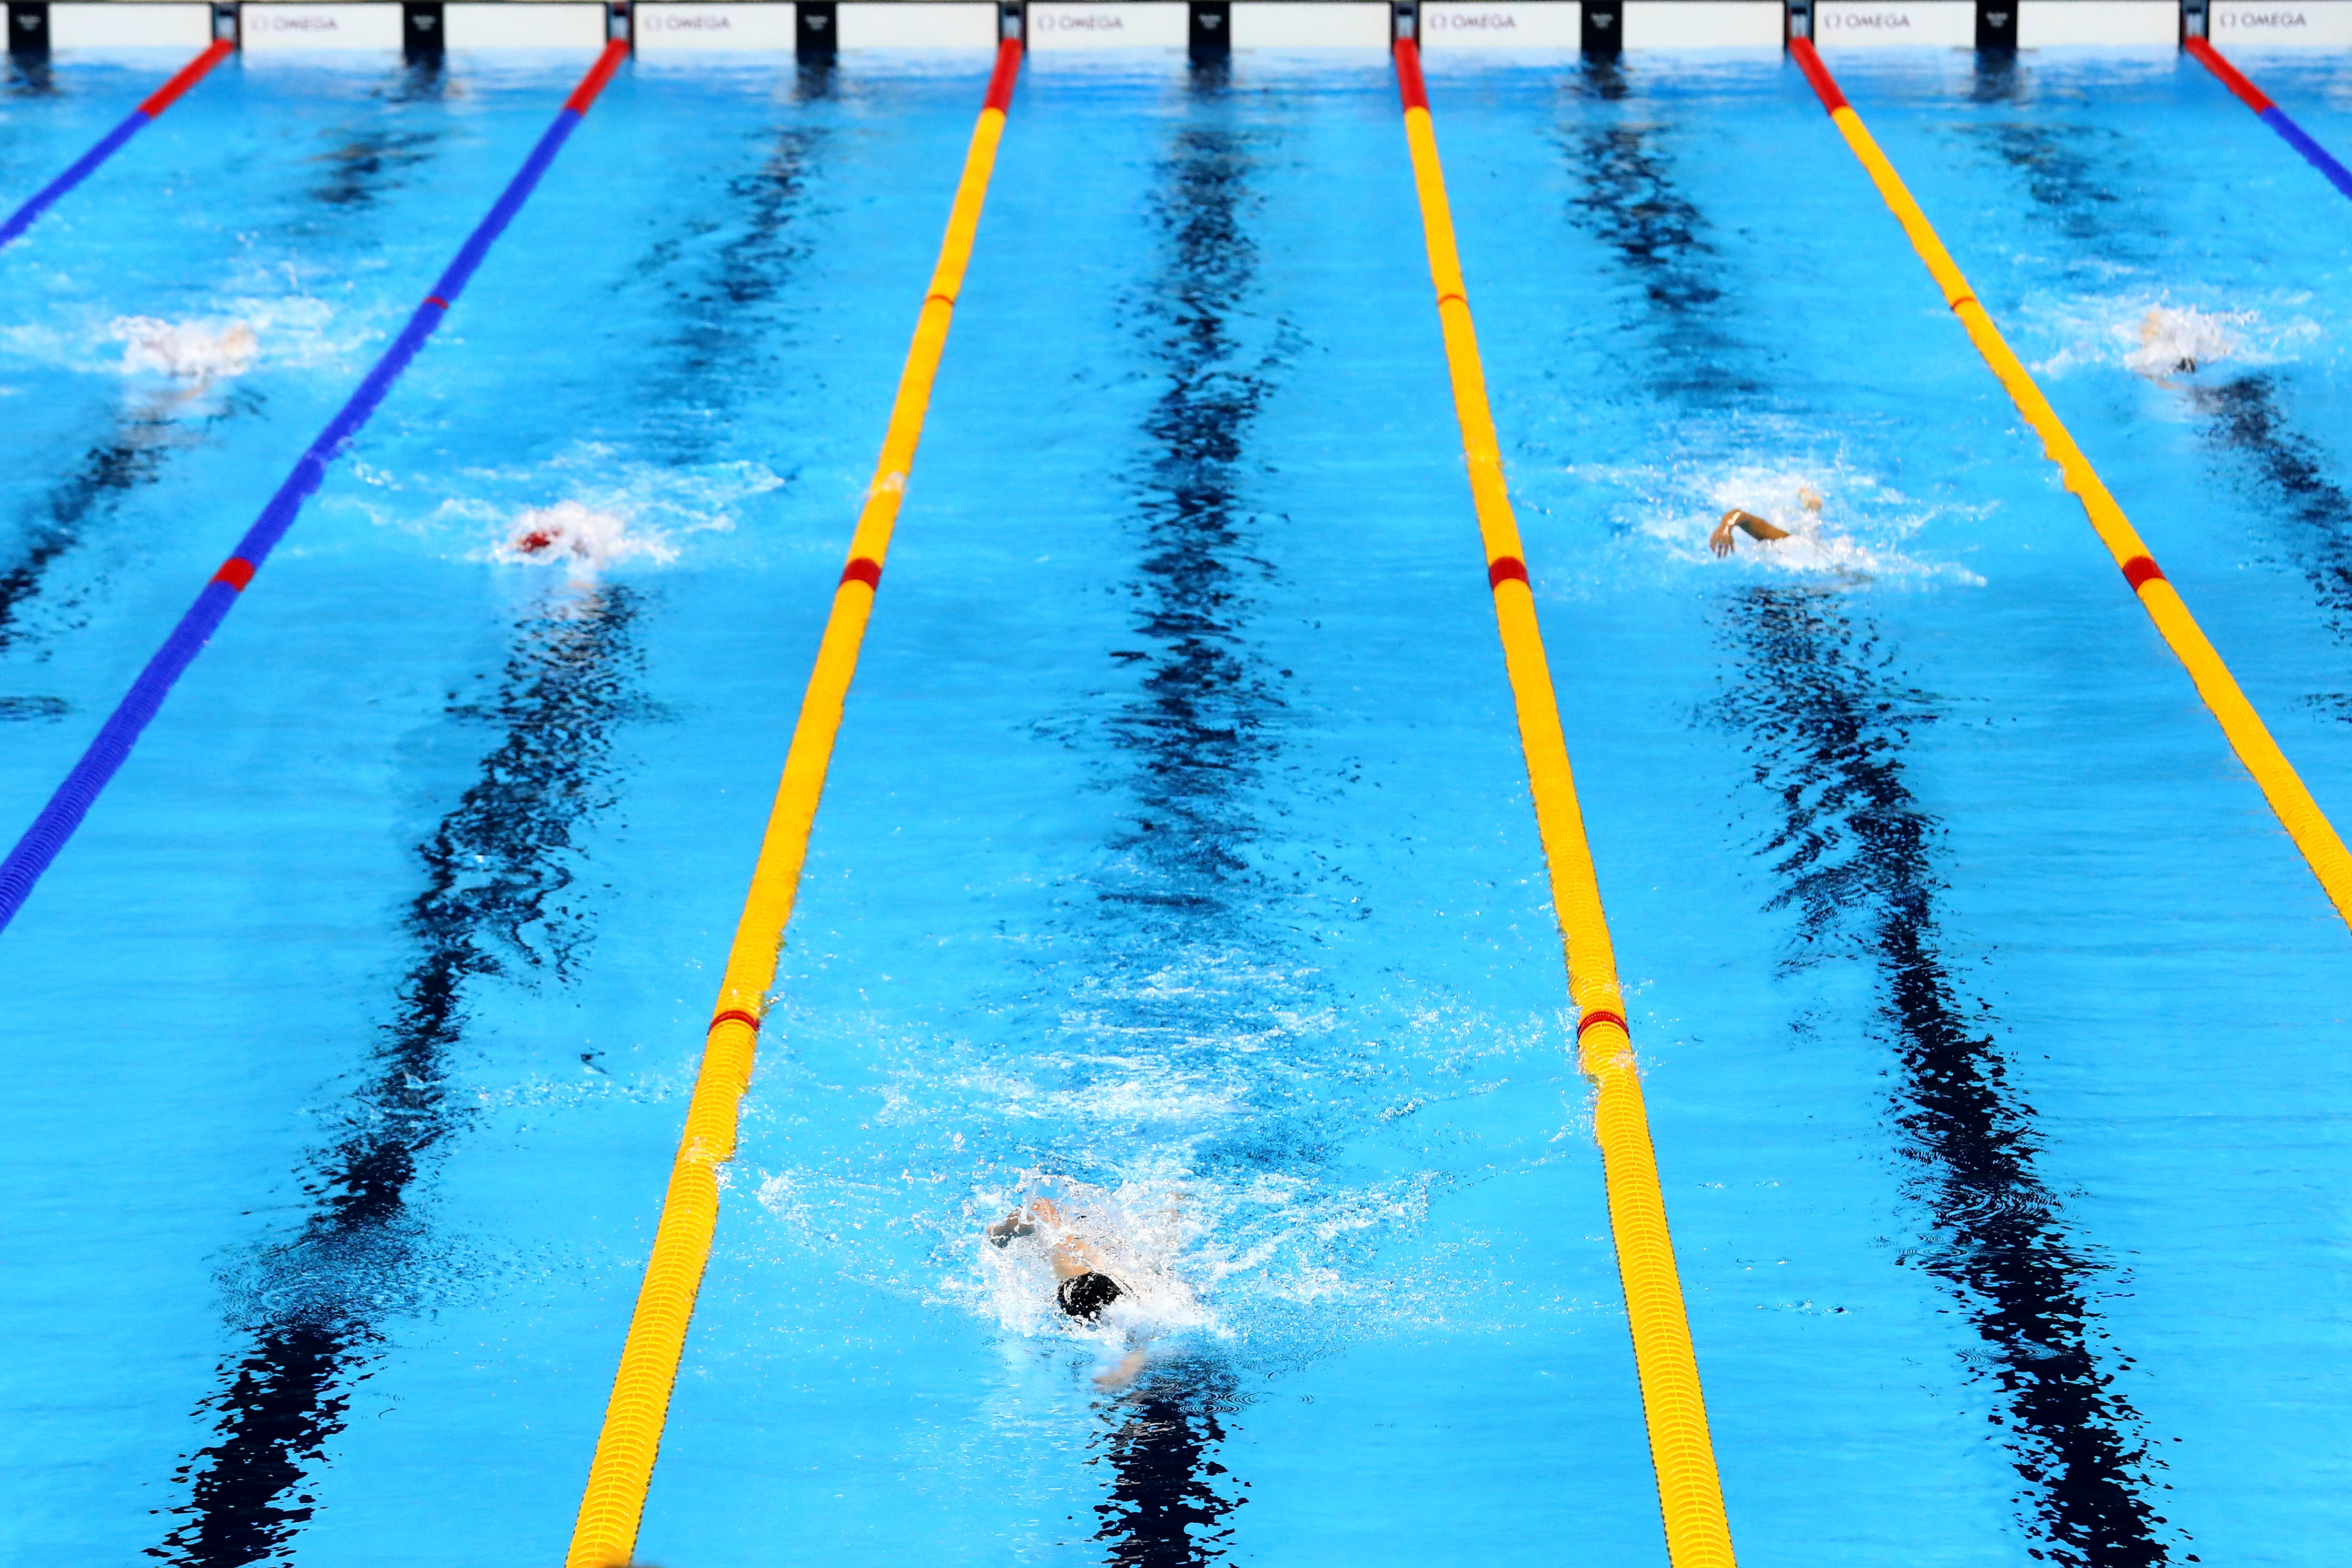 Katie Ledecky leads the field in the Women's 800m Freestyle Final on Day 7 of the Rio 2016 Olympic Games, on August 12, 2016.